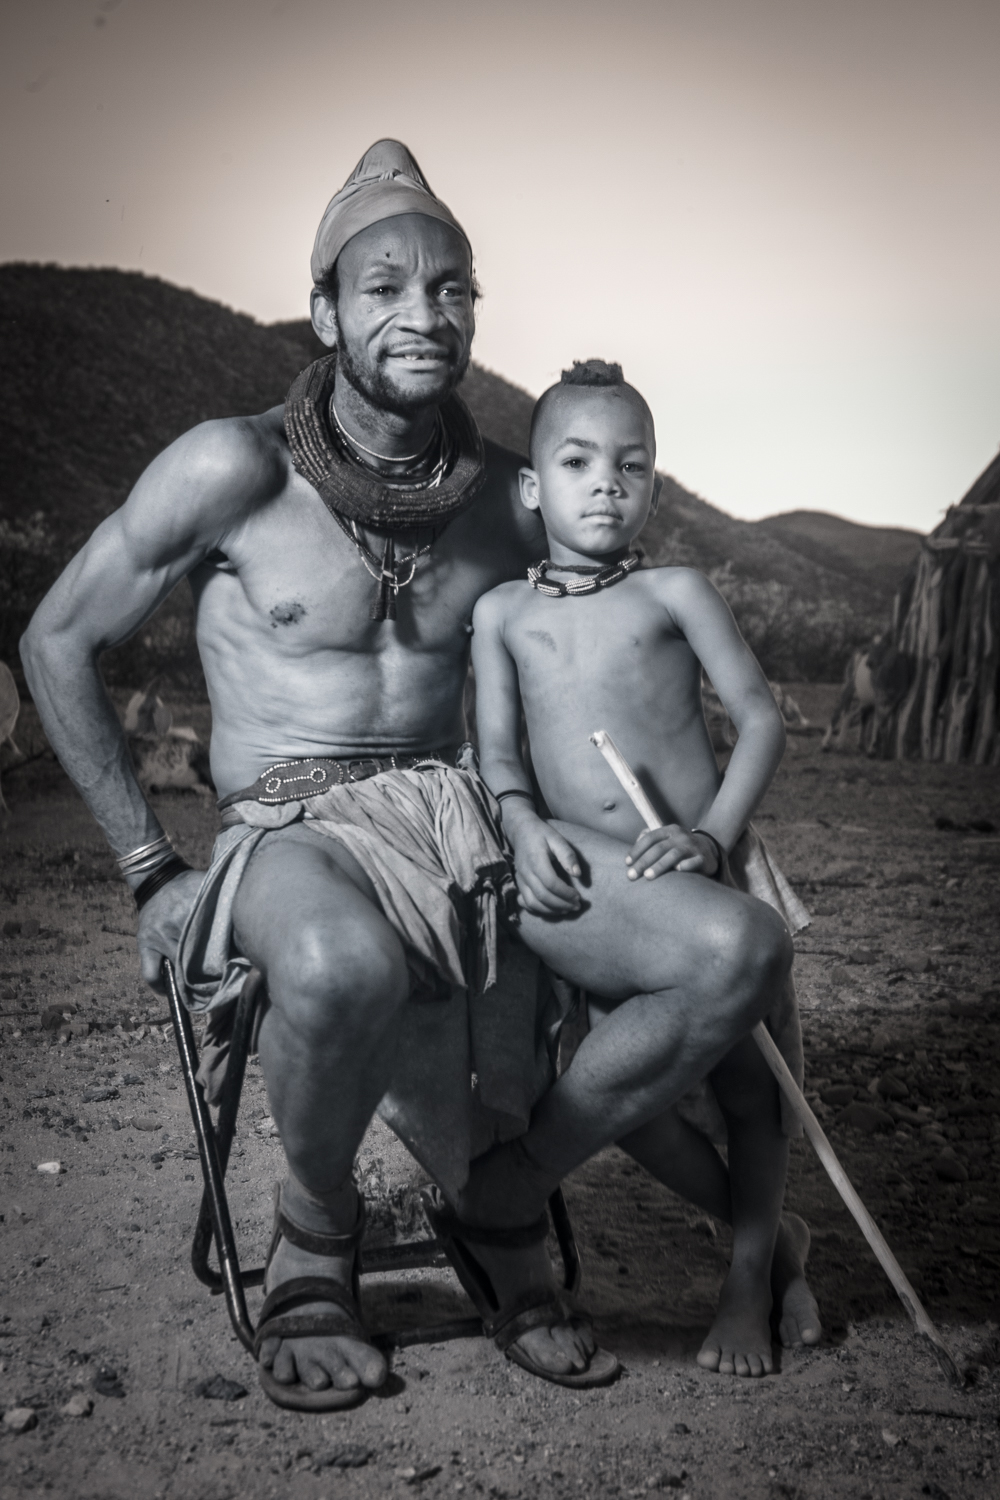 A Himba father and son.